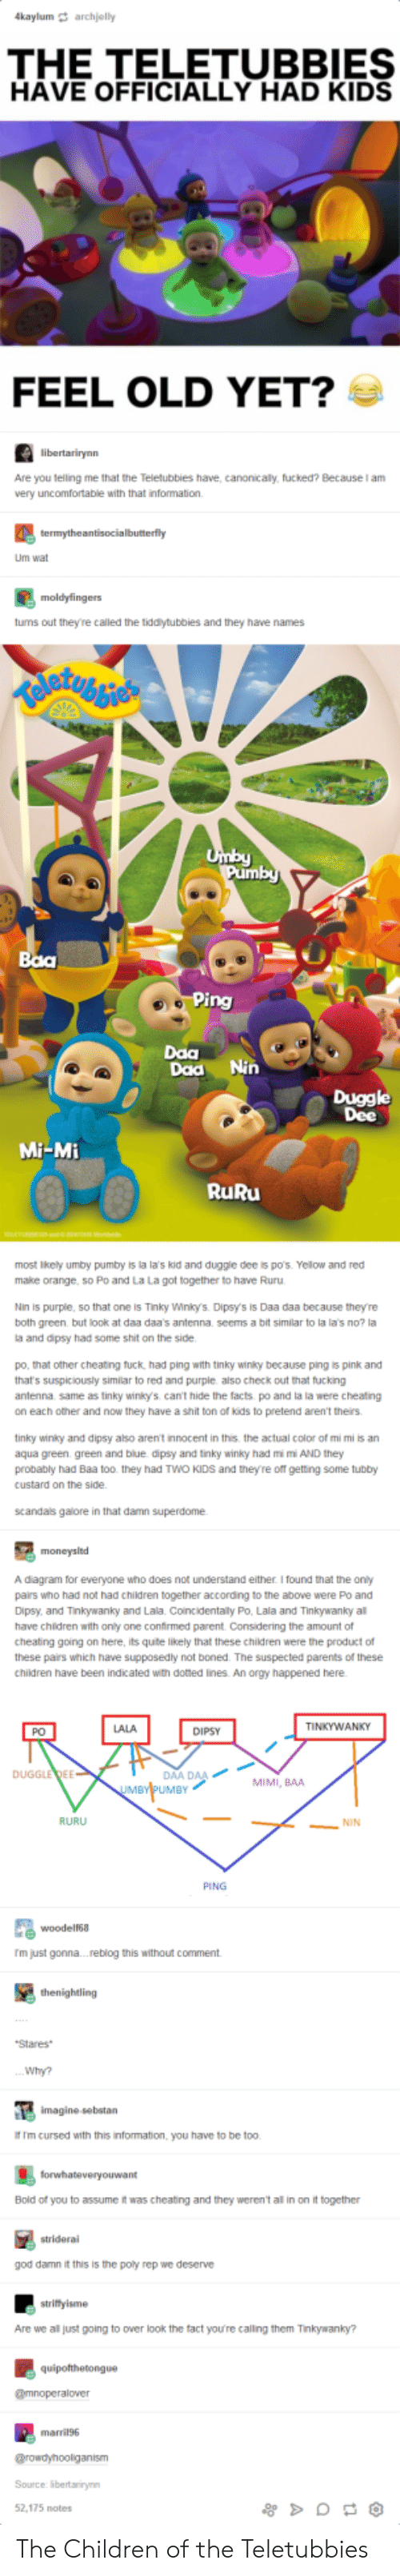 lala: kaylum archjelly  THE TELETUBBIES  HAVE OFFICIALLY HAD KIDS  FEEL OLD YET?  Are you telling me that the Teletubbies have, canonicaly, fucked? Because I am  very uncomfortable with that information.  Um wat  tums out they're called the tiddytubbies and they have names  Daa  Daa Nin  Duggle  Dee  Mi-Mi  RuRu  most ikely umby pumby is la la's kid and duggle dee is p0's. Yelow and red  make orange, so Po and La La got together to have Ruru  Nin is purple, so that one is Tinky Winlo. Dipsys is Daa daa because they're  both green but Ook at daa daas antenna seems a bit similar to la la's no? !  a and dipsy had some shit on the side  po, that other cheating tuck, had ping with tinky winky because ping is pink and  that's suspiciously similar to red and purple also check out that fucking  antenna same as tinky winky's can't hide the facts po and la la were cheating  on each other and now they have a shit ton of kids to pretend aren't theirs  tinky winiky and dipsy also arent innocent in this the actual color of mi mi is an  aqua green. green and blue dipsy and tinky winky had mi m AND they  probably had Baa too. they had TWO KIDs and theyre off getting some tubby  custard on the side  scandas galore in that damn superdome  A diagram for everyone who does not understand either I found that the oniy  pairs who had not had children together according to the above were Po and  Dipsy, and Tinkywanky and Lala. Coincidentaily Po, Lala and Tinkywanky al  have chidren with only one confirmed parent. Considering the amount of  cheatng going on here, its quite likely that these children were the product of  these pairs which have supposedly not boned. The suspected parents of these  children have been indicated with doted ines. An orgy happened here  LALA  TINKYWANKY  PO  DIPSY  AA DAA  UMBY  DUGGLEDEE  MIMI, BAA  RURU  NIN  PING  尾woodens.  m just gonna....reblog this without comment  Stares  Why?  f Im cursed with this information, you have to be too.  Bold of you to assume it was cheating and they weren't all in on it together  striderai  god damn it this is the poly rep we deserve  Are we all just going to over look the fact youre calling them Tinkywanky?  Source: ibertaniryn  52,175 notes The Children of the Teletubbies